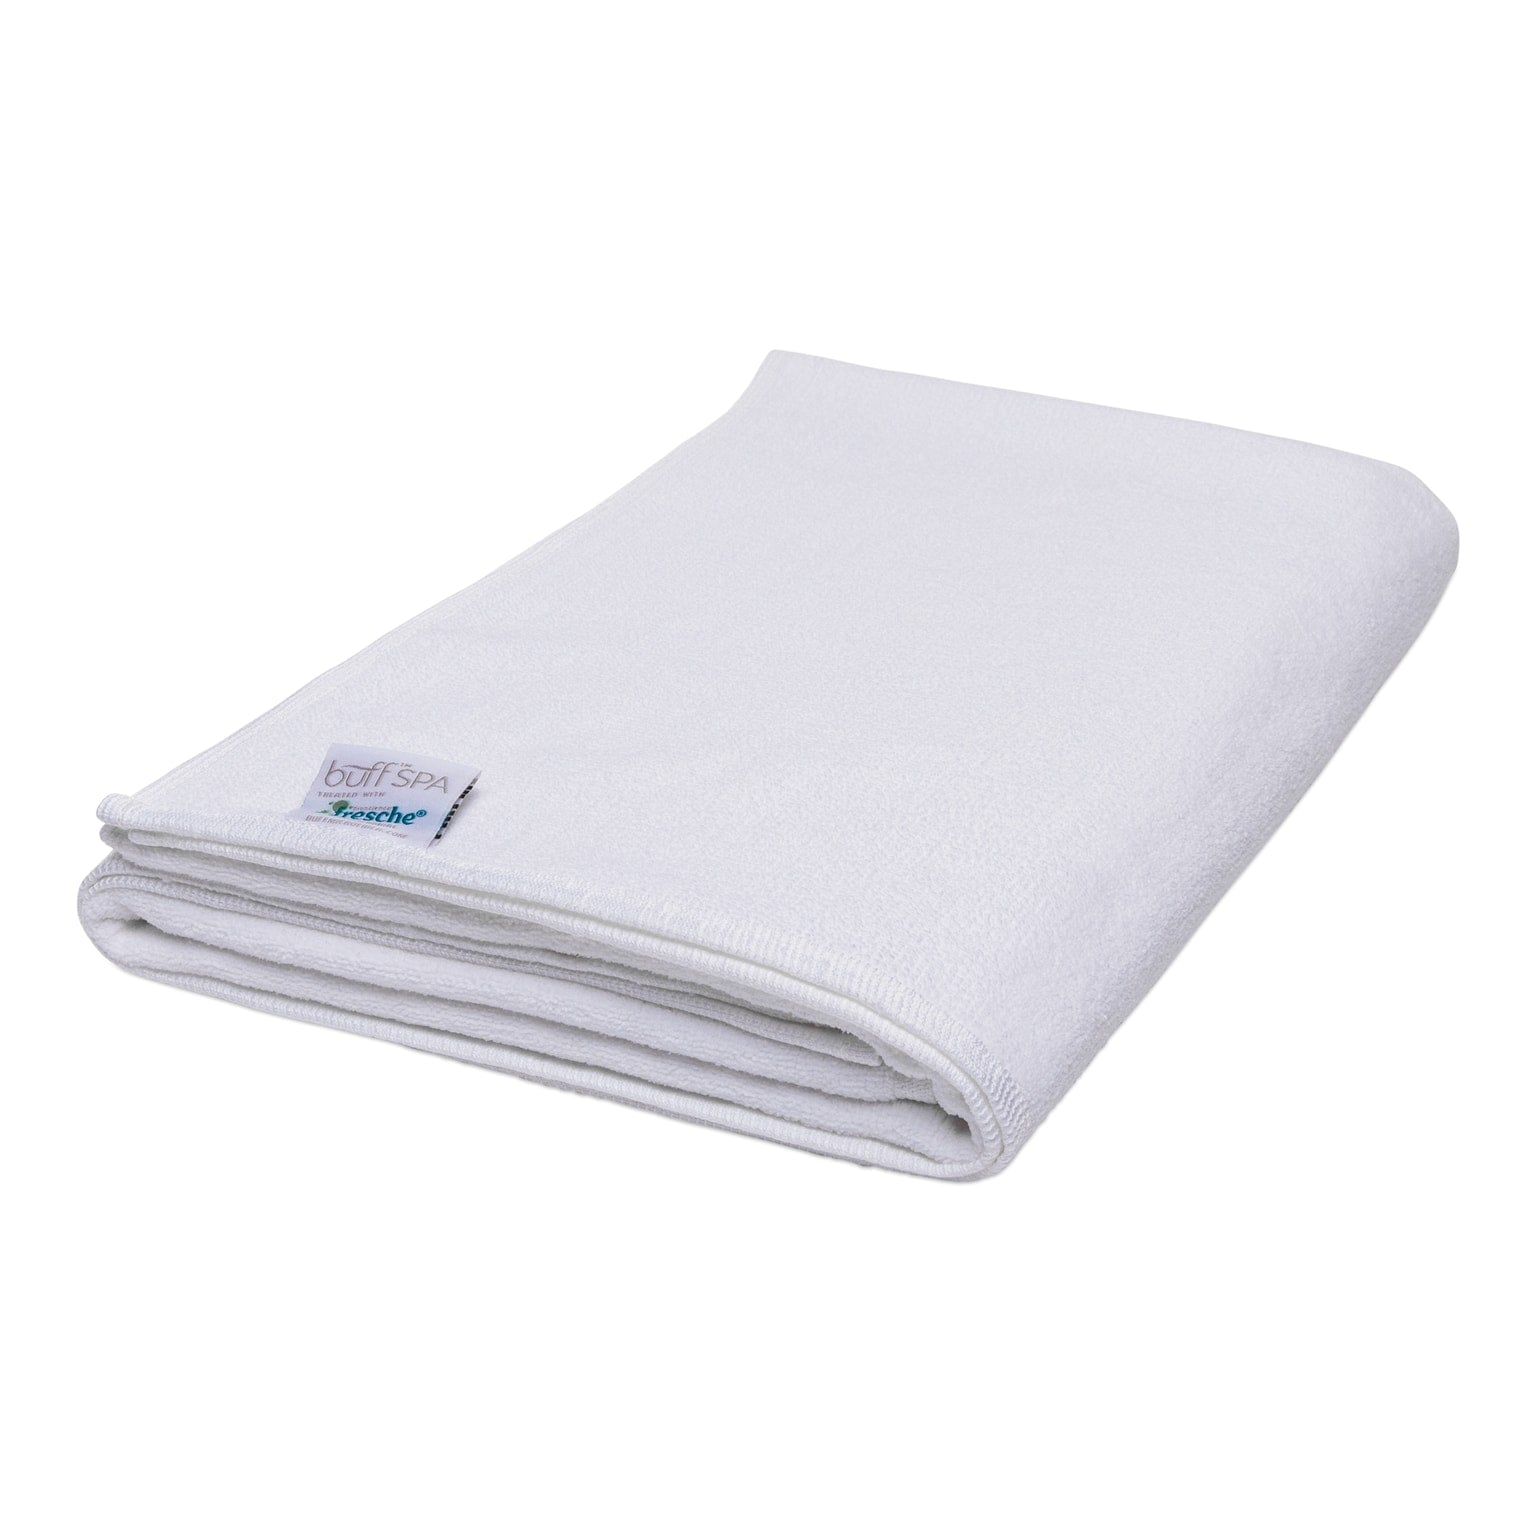 White Microfiber Bath Towels